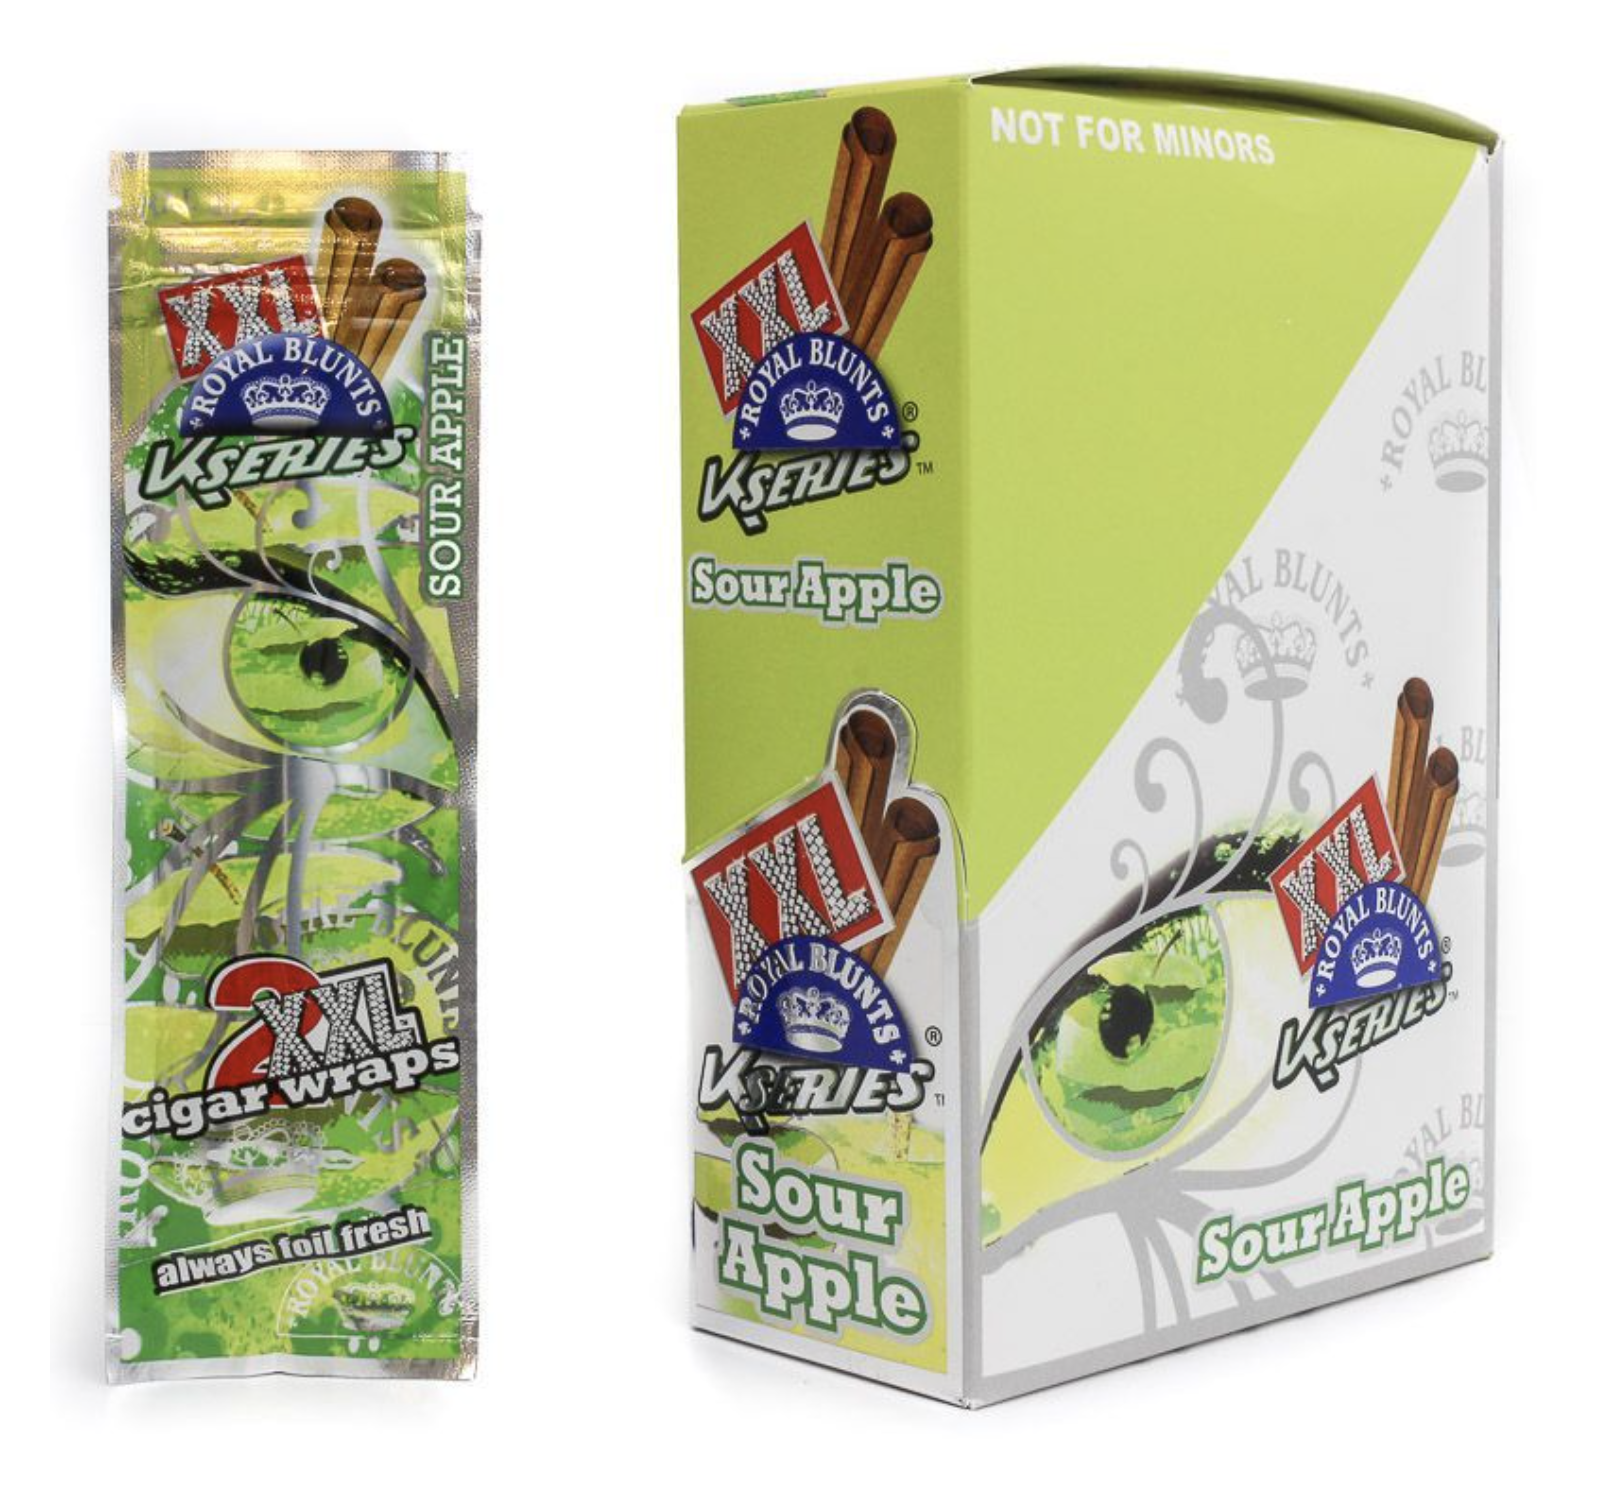 ROYAL BLUNTS XXL SOUR APPLE